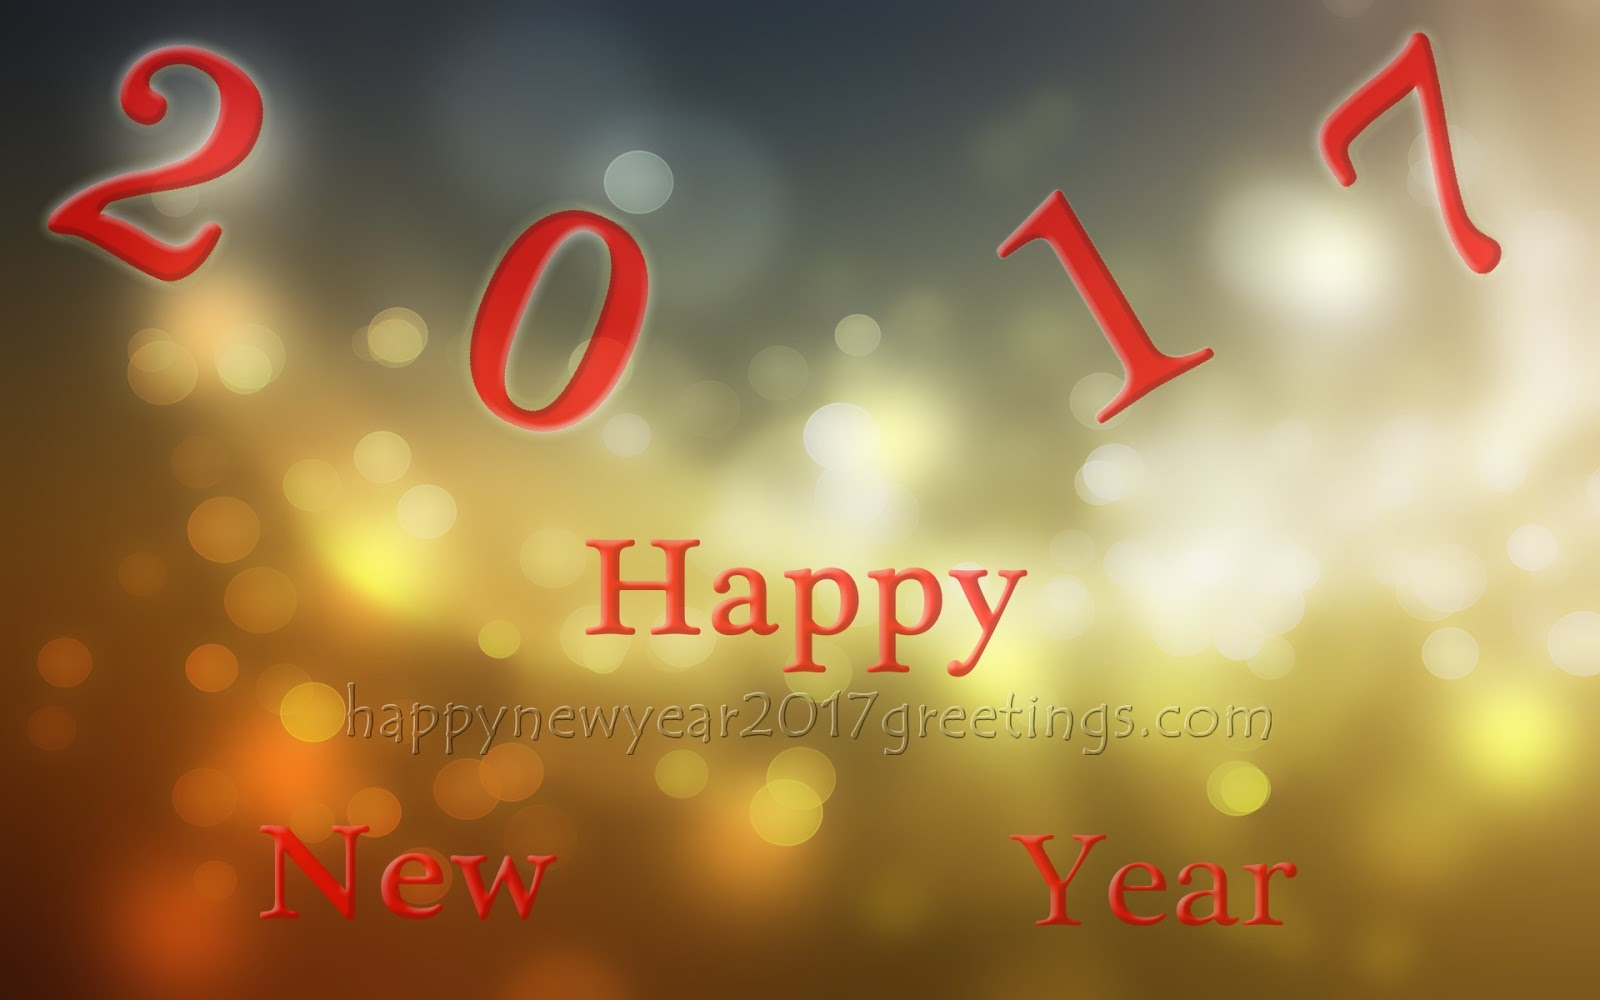 Happy New Year 2018 Full HD Desktop Wallpapers Download Free - New Year 2018 ...